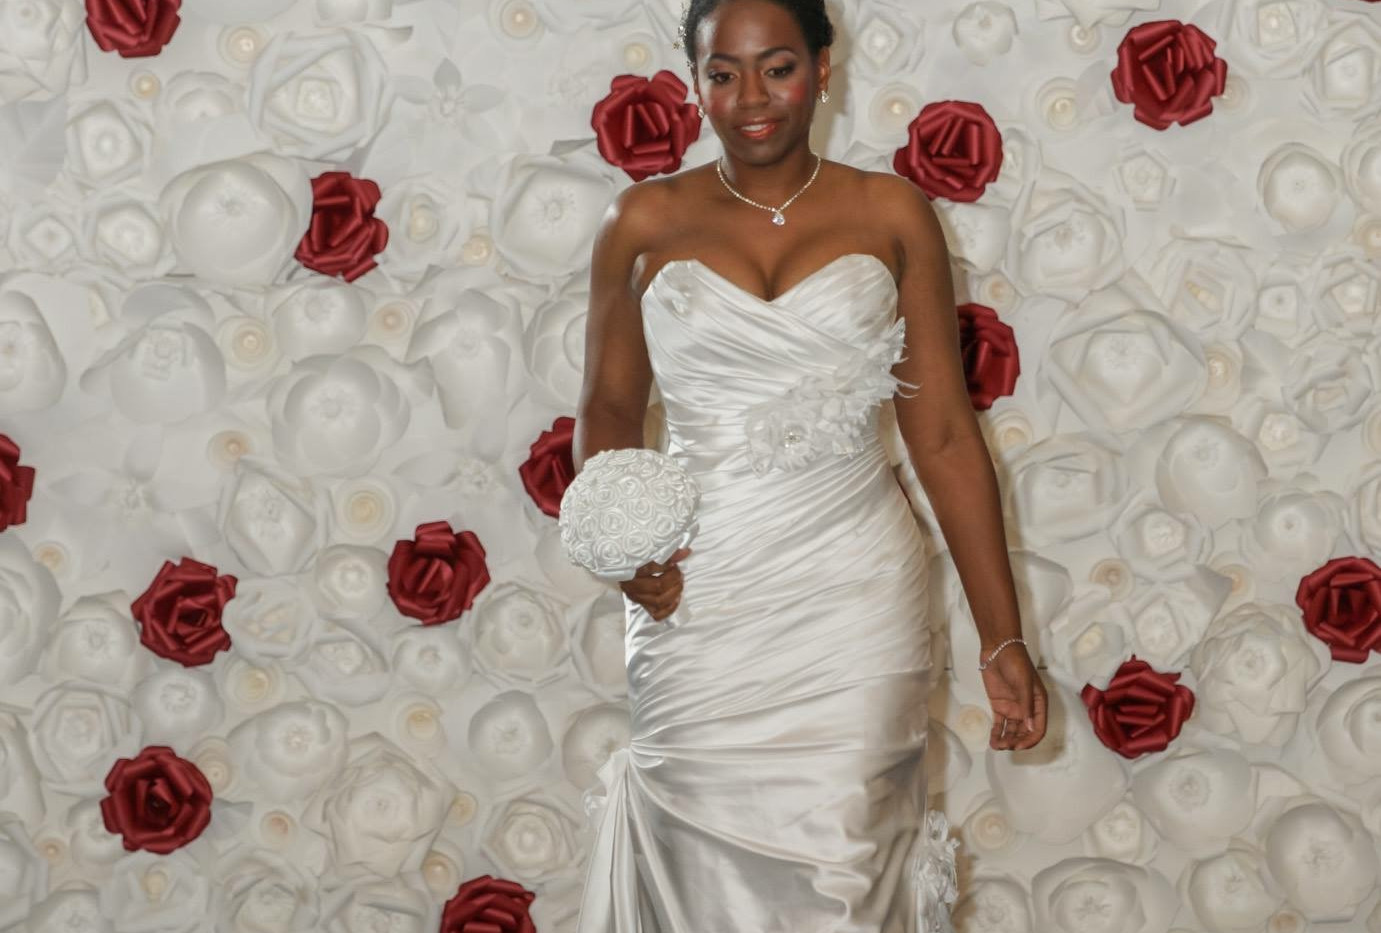 All White Backdrop With Red Roses